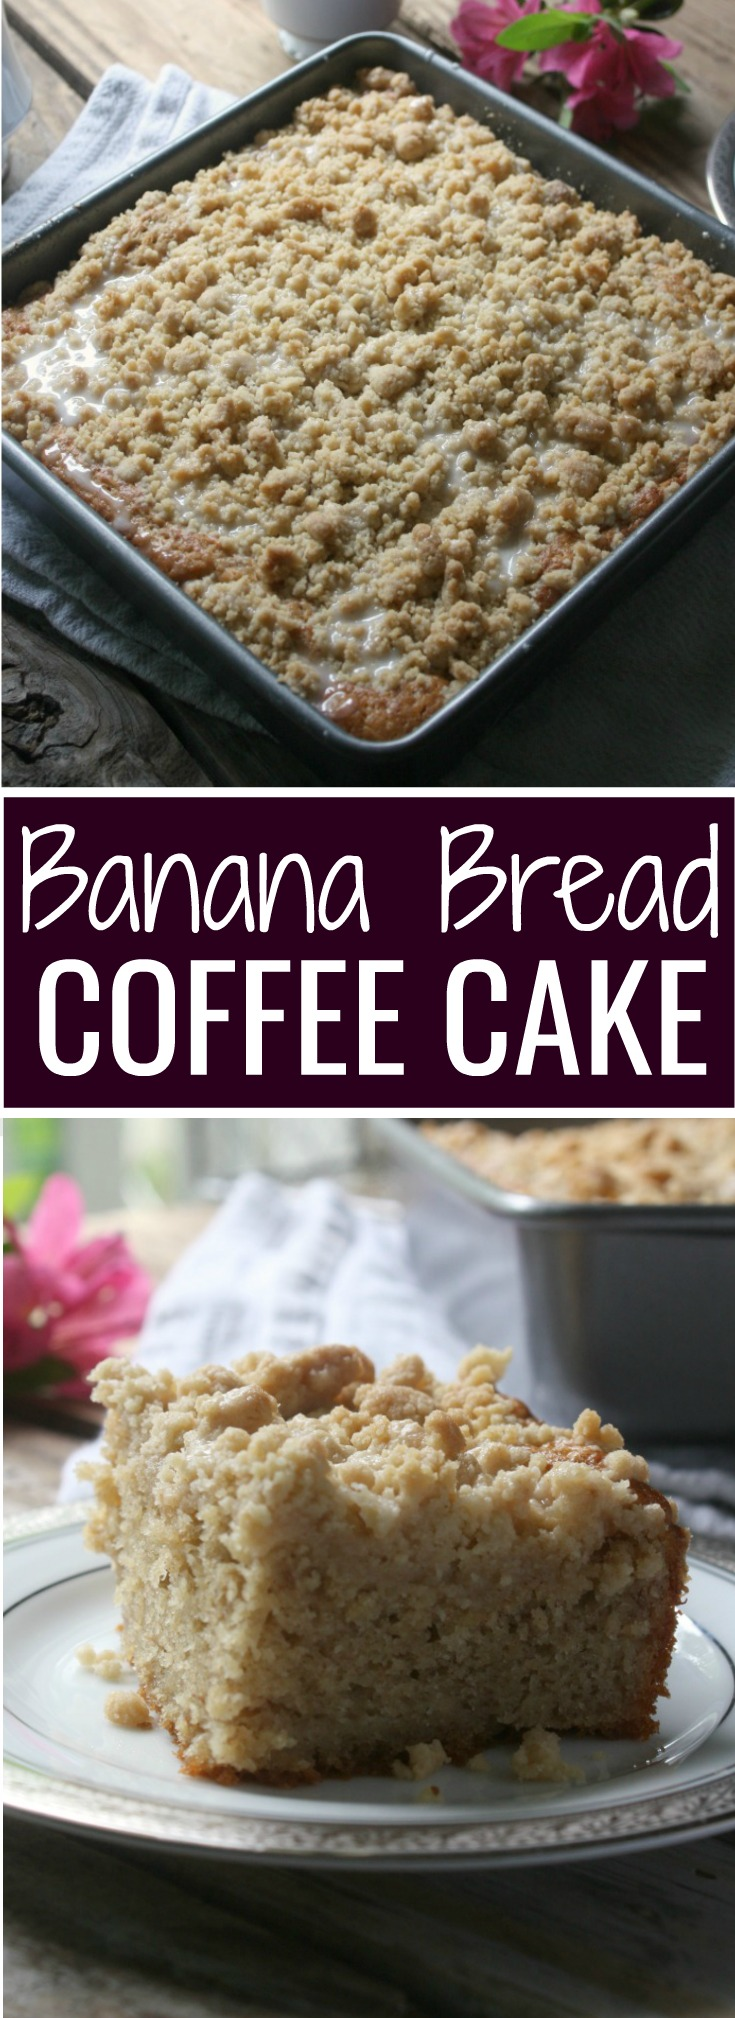 Banana Bread Coffee Cake with a streusal topping and icing drizzle.